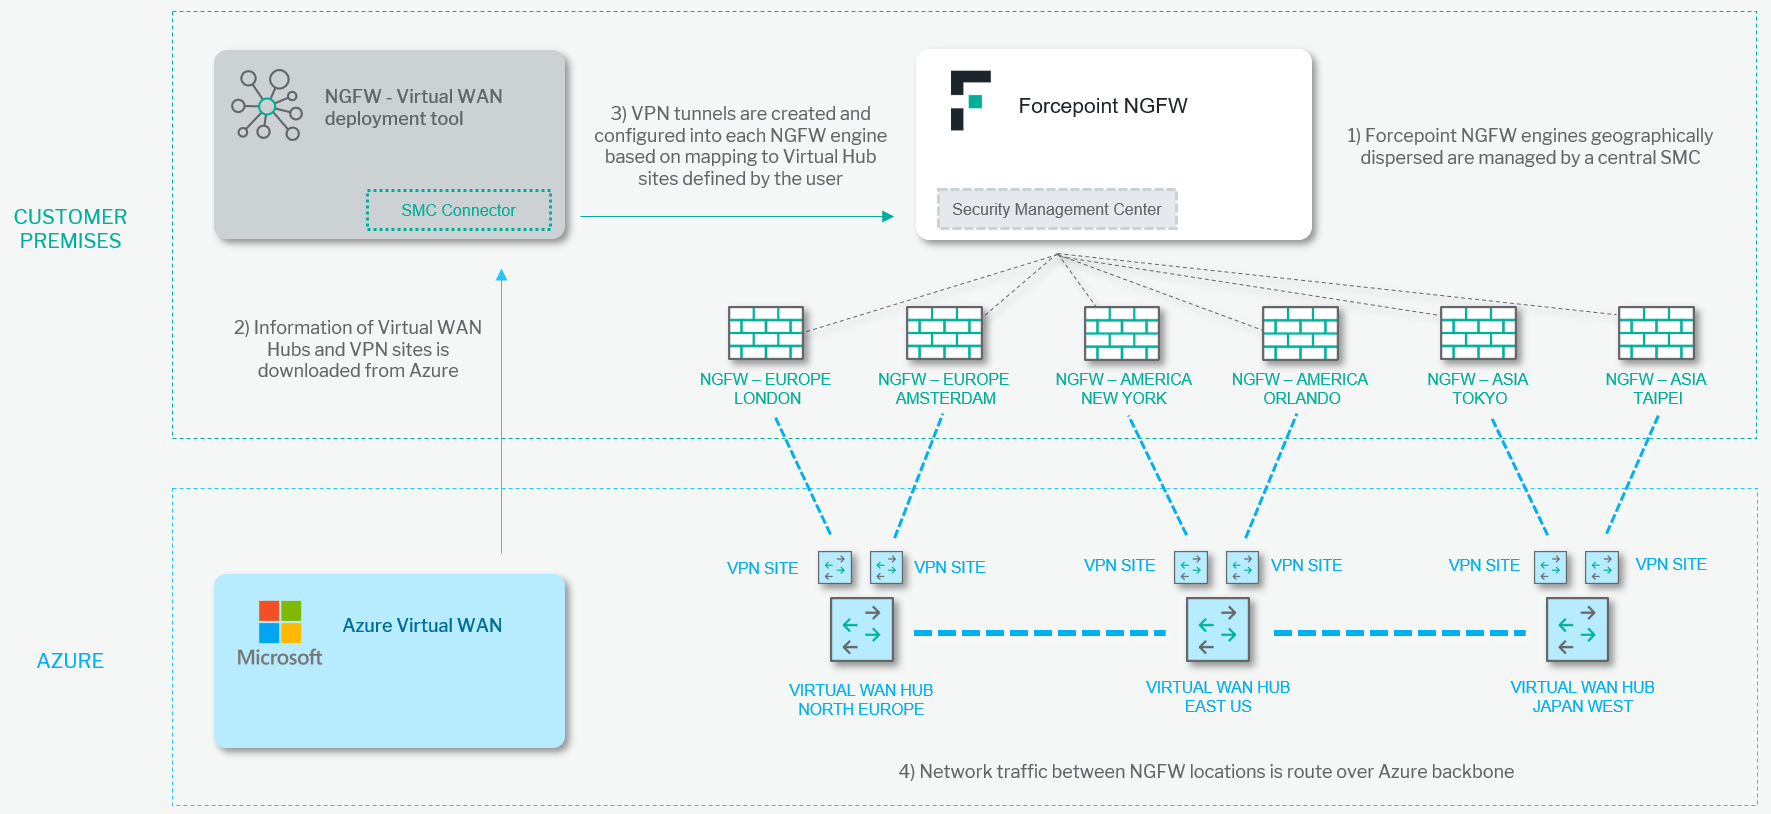 Forcepoint NGFW and Azure Virtual WAN integration diagram